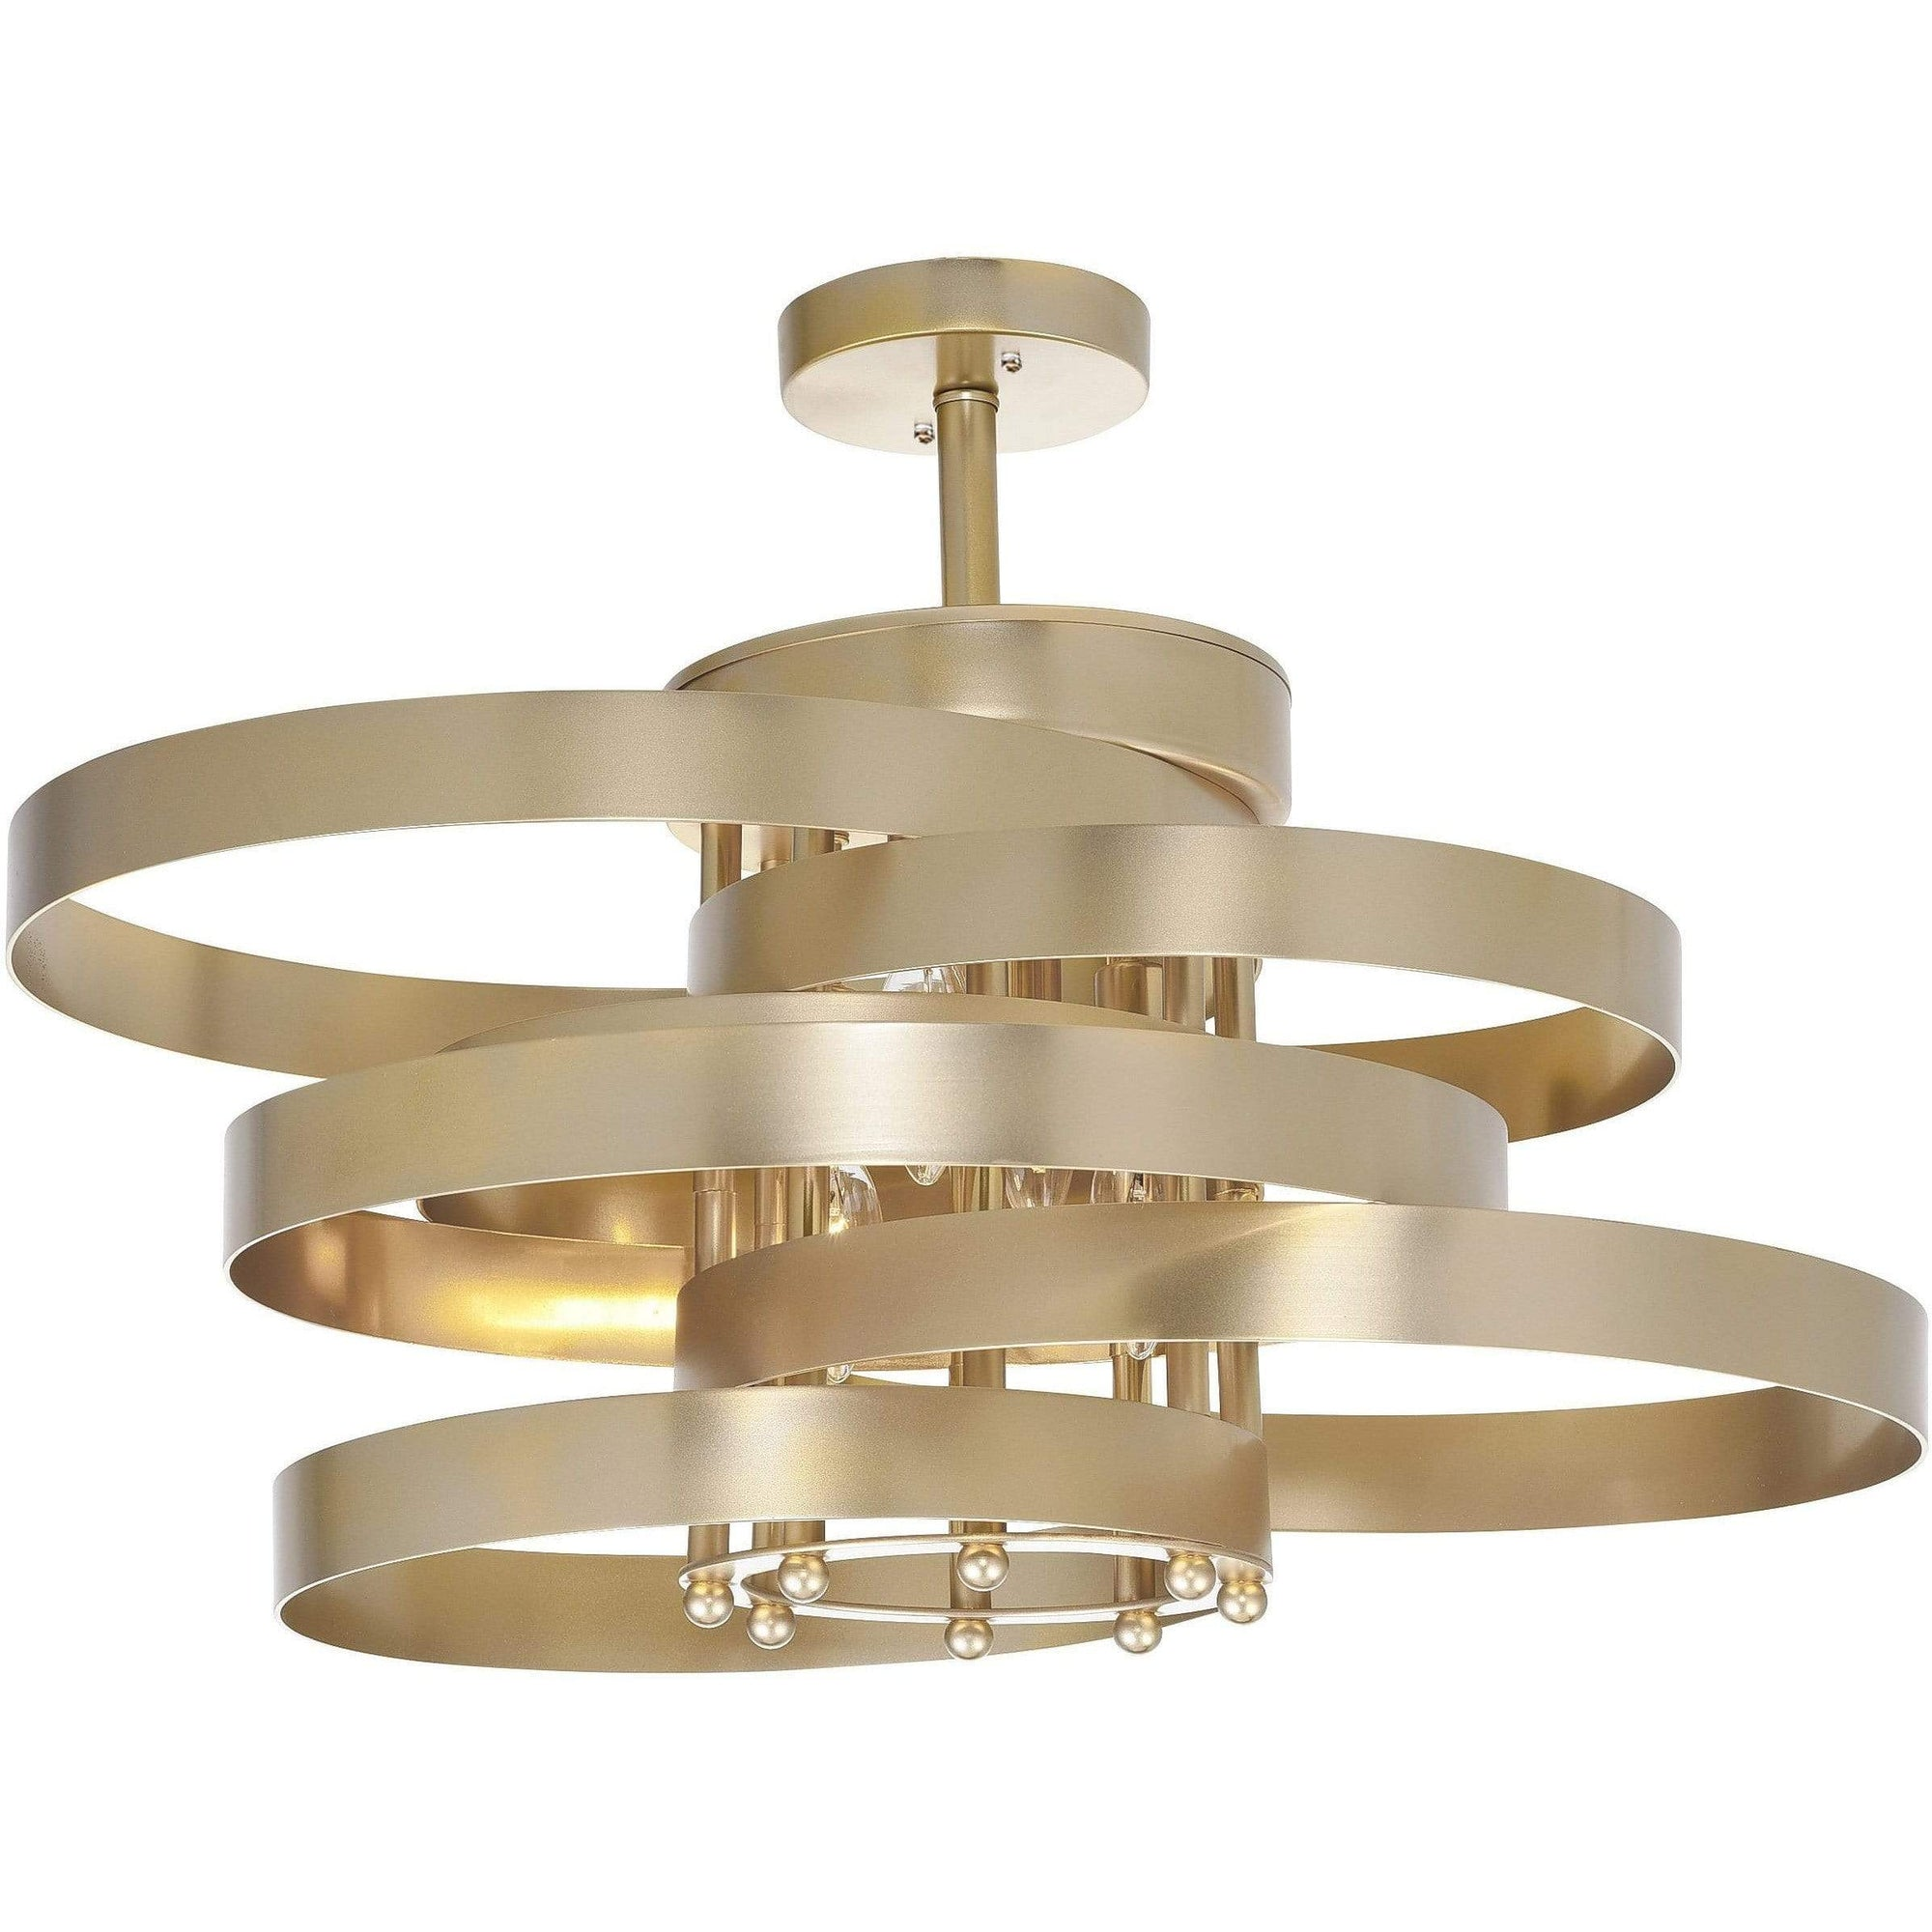 CWI Lighting Flush Mounts Gold Leaf Elizabetta 3 Light Flush Mount with Gold Leaf Finish by CWI Lighting 1068C20-3-620